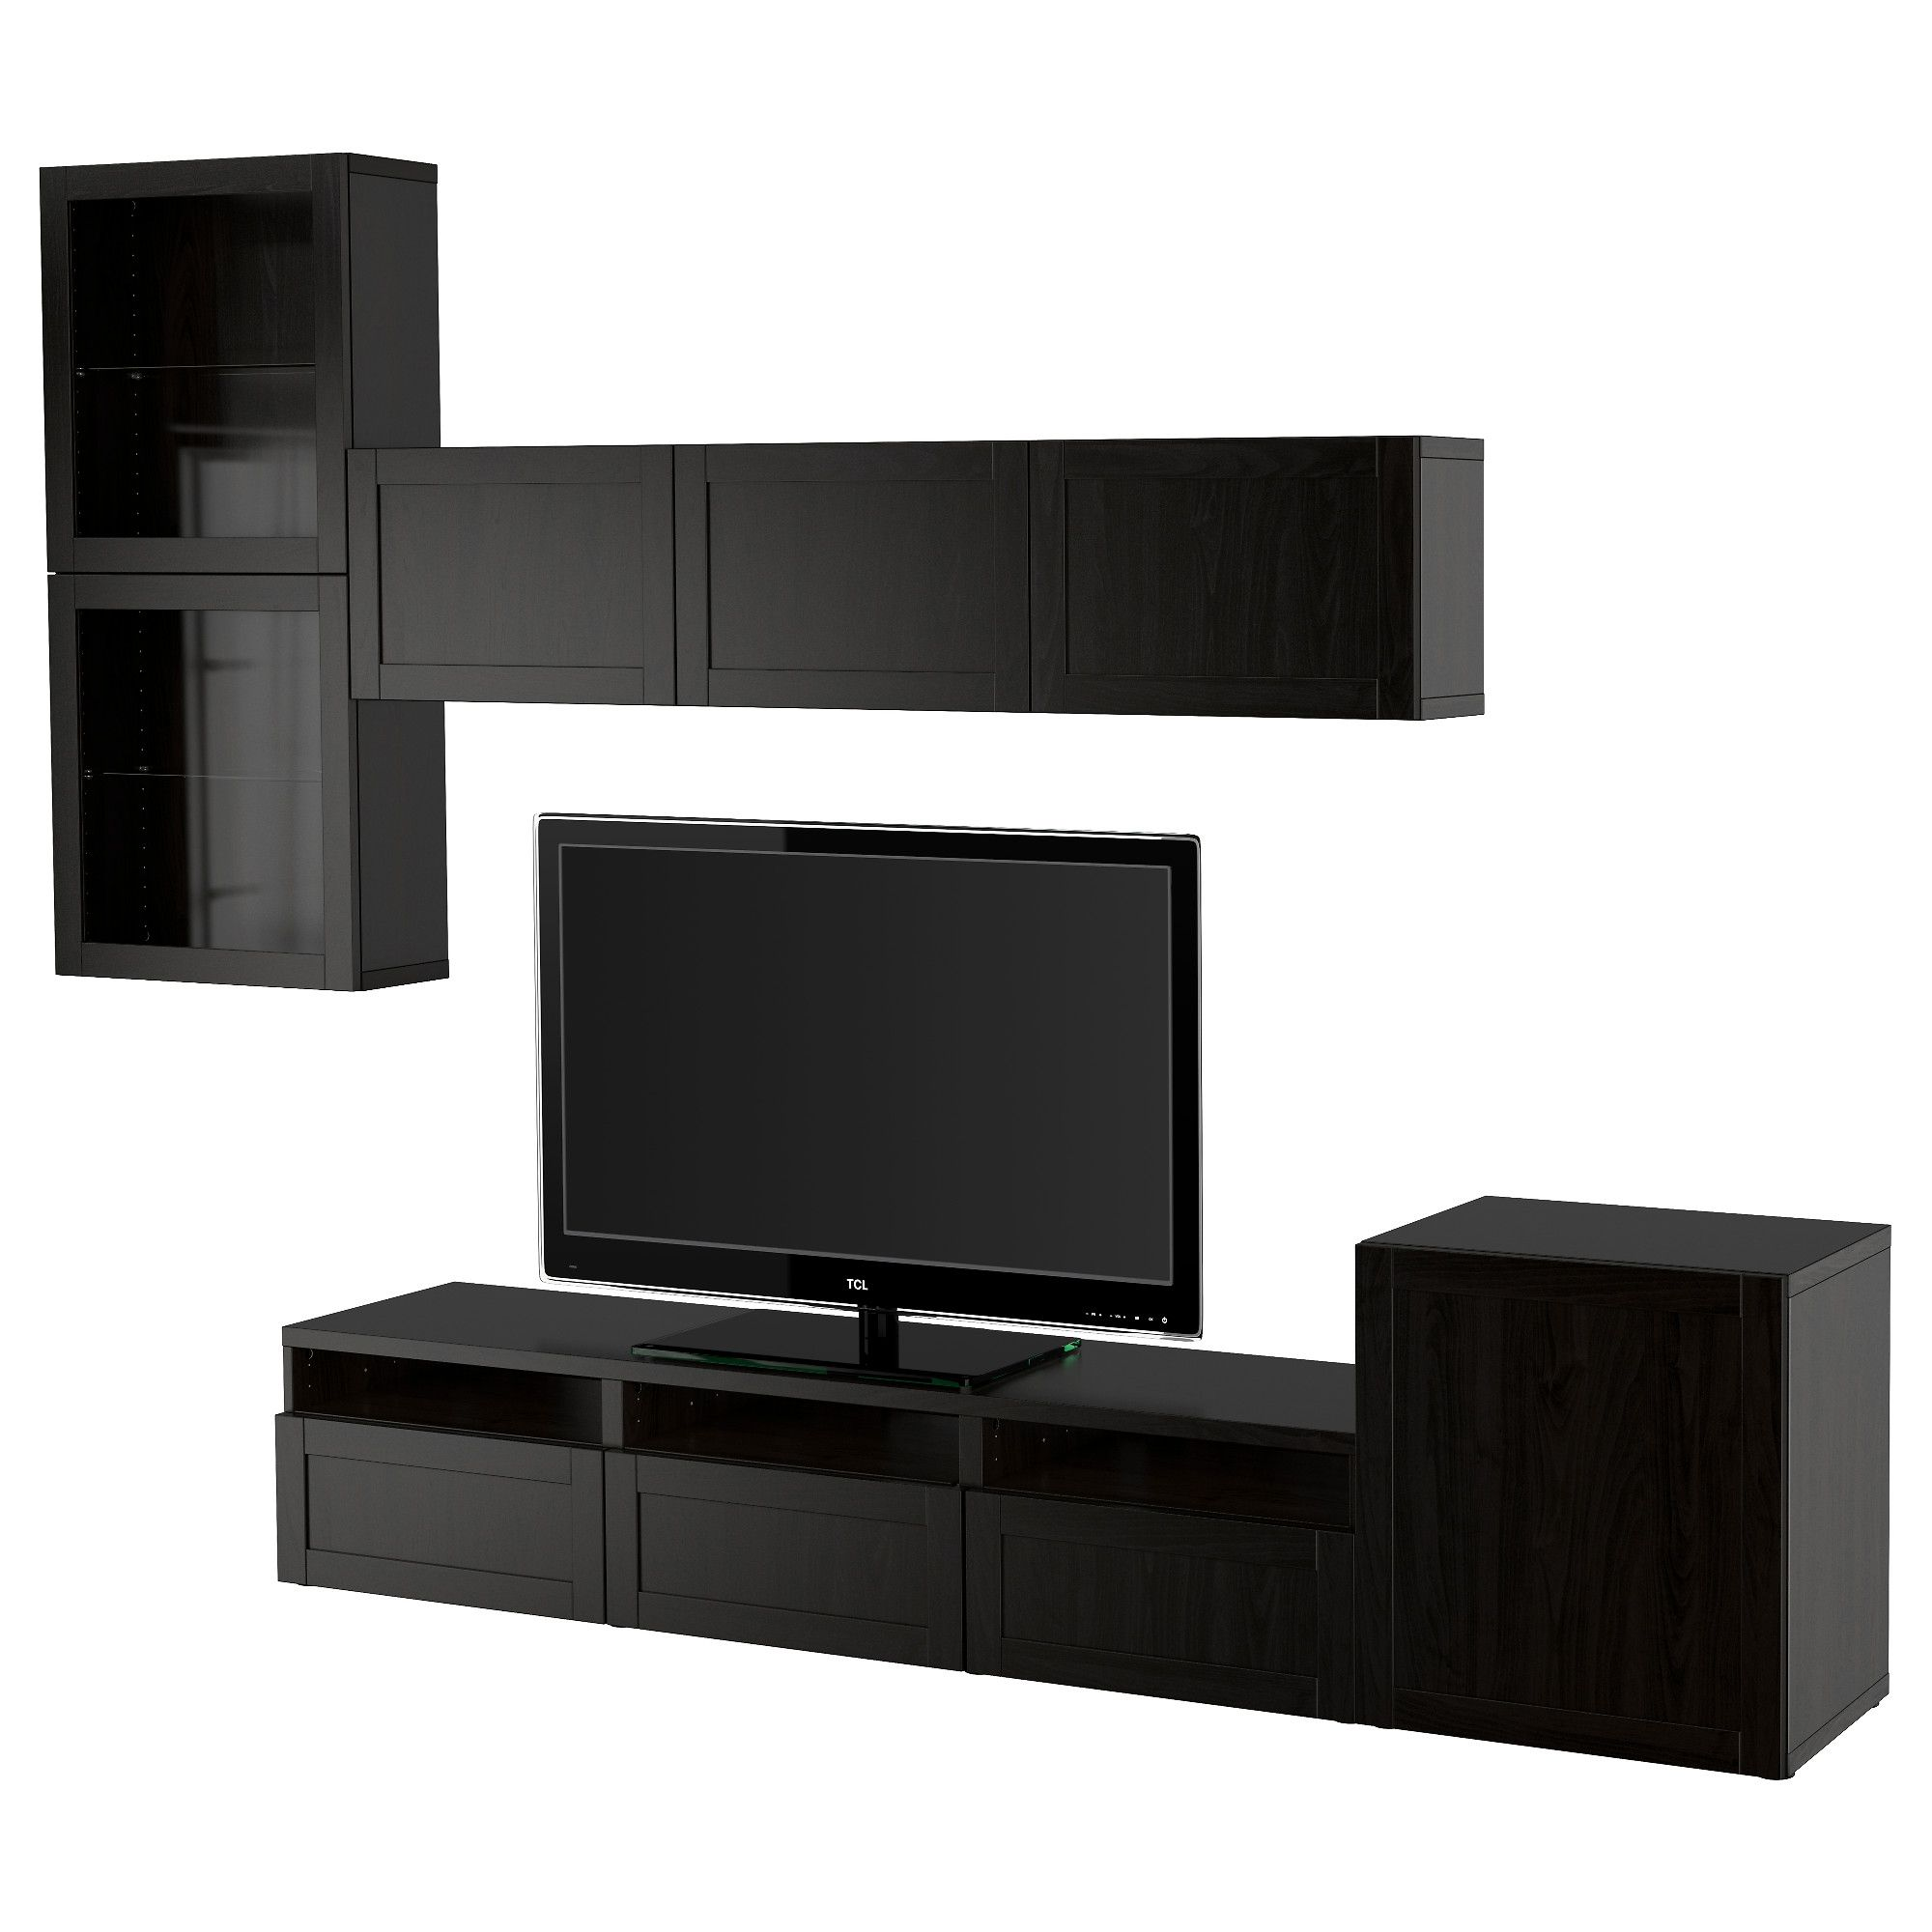 Home Furnishings, Kitchens, Appliances, Sofas, Beds, Mattresses  Ikea Drawer